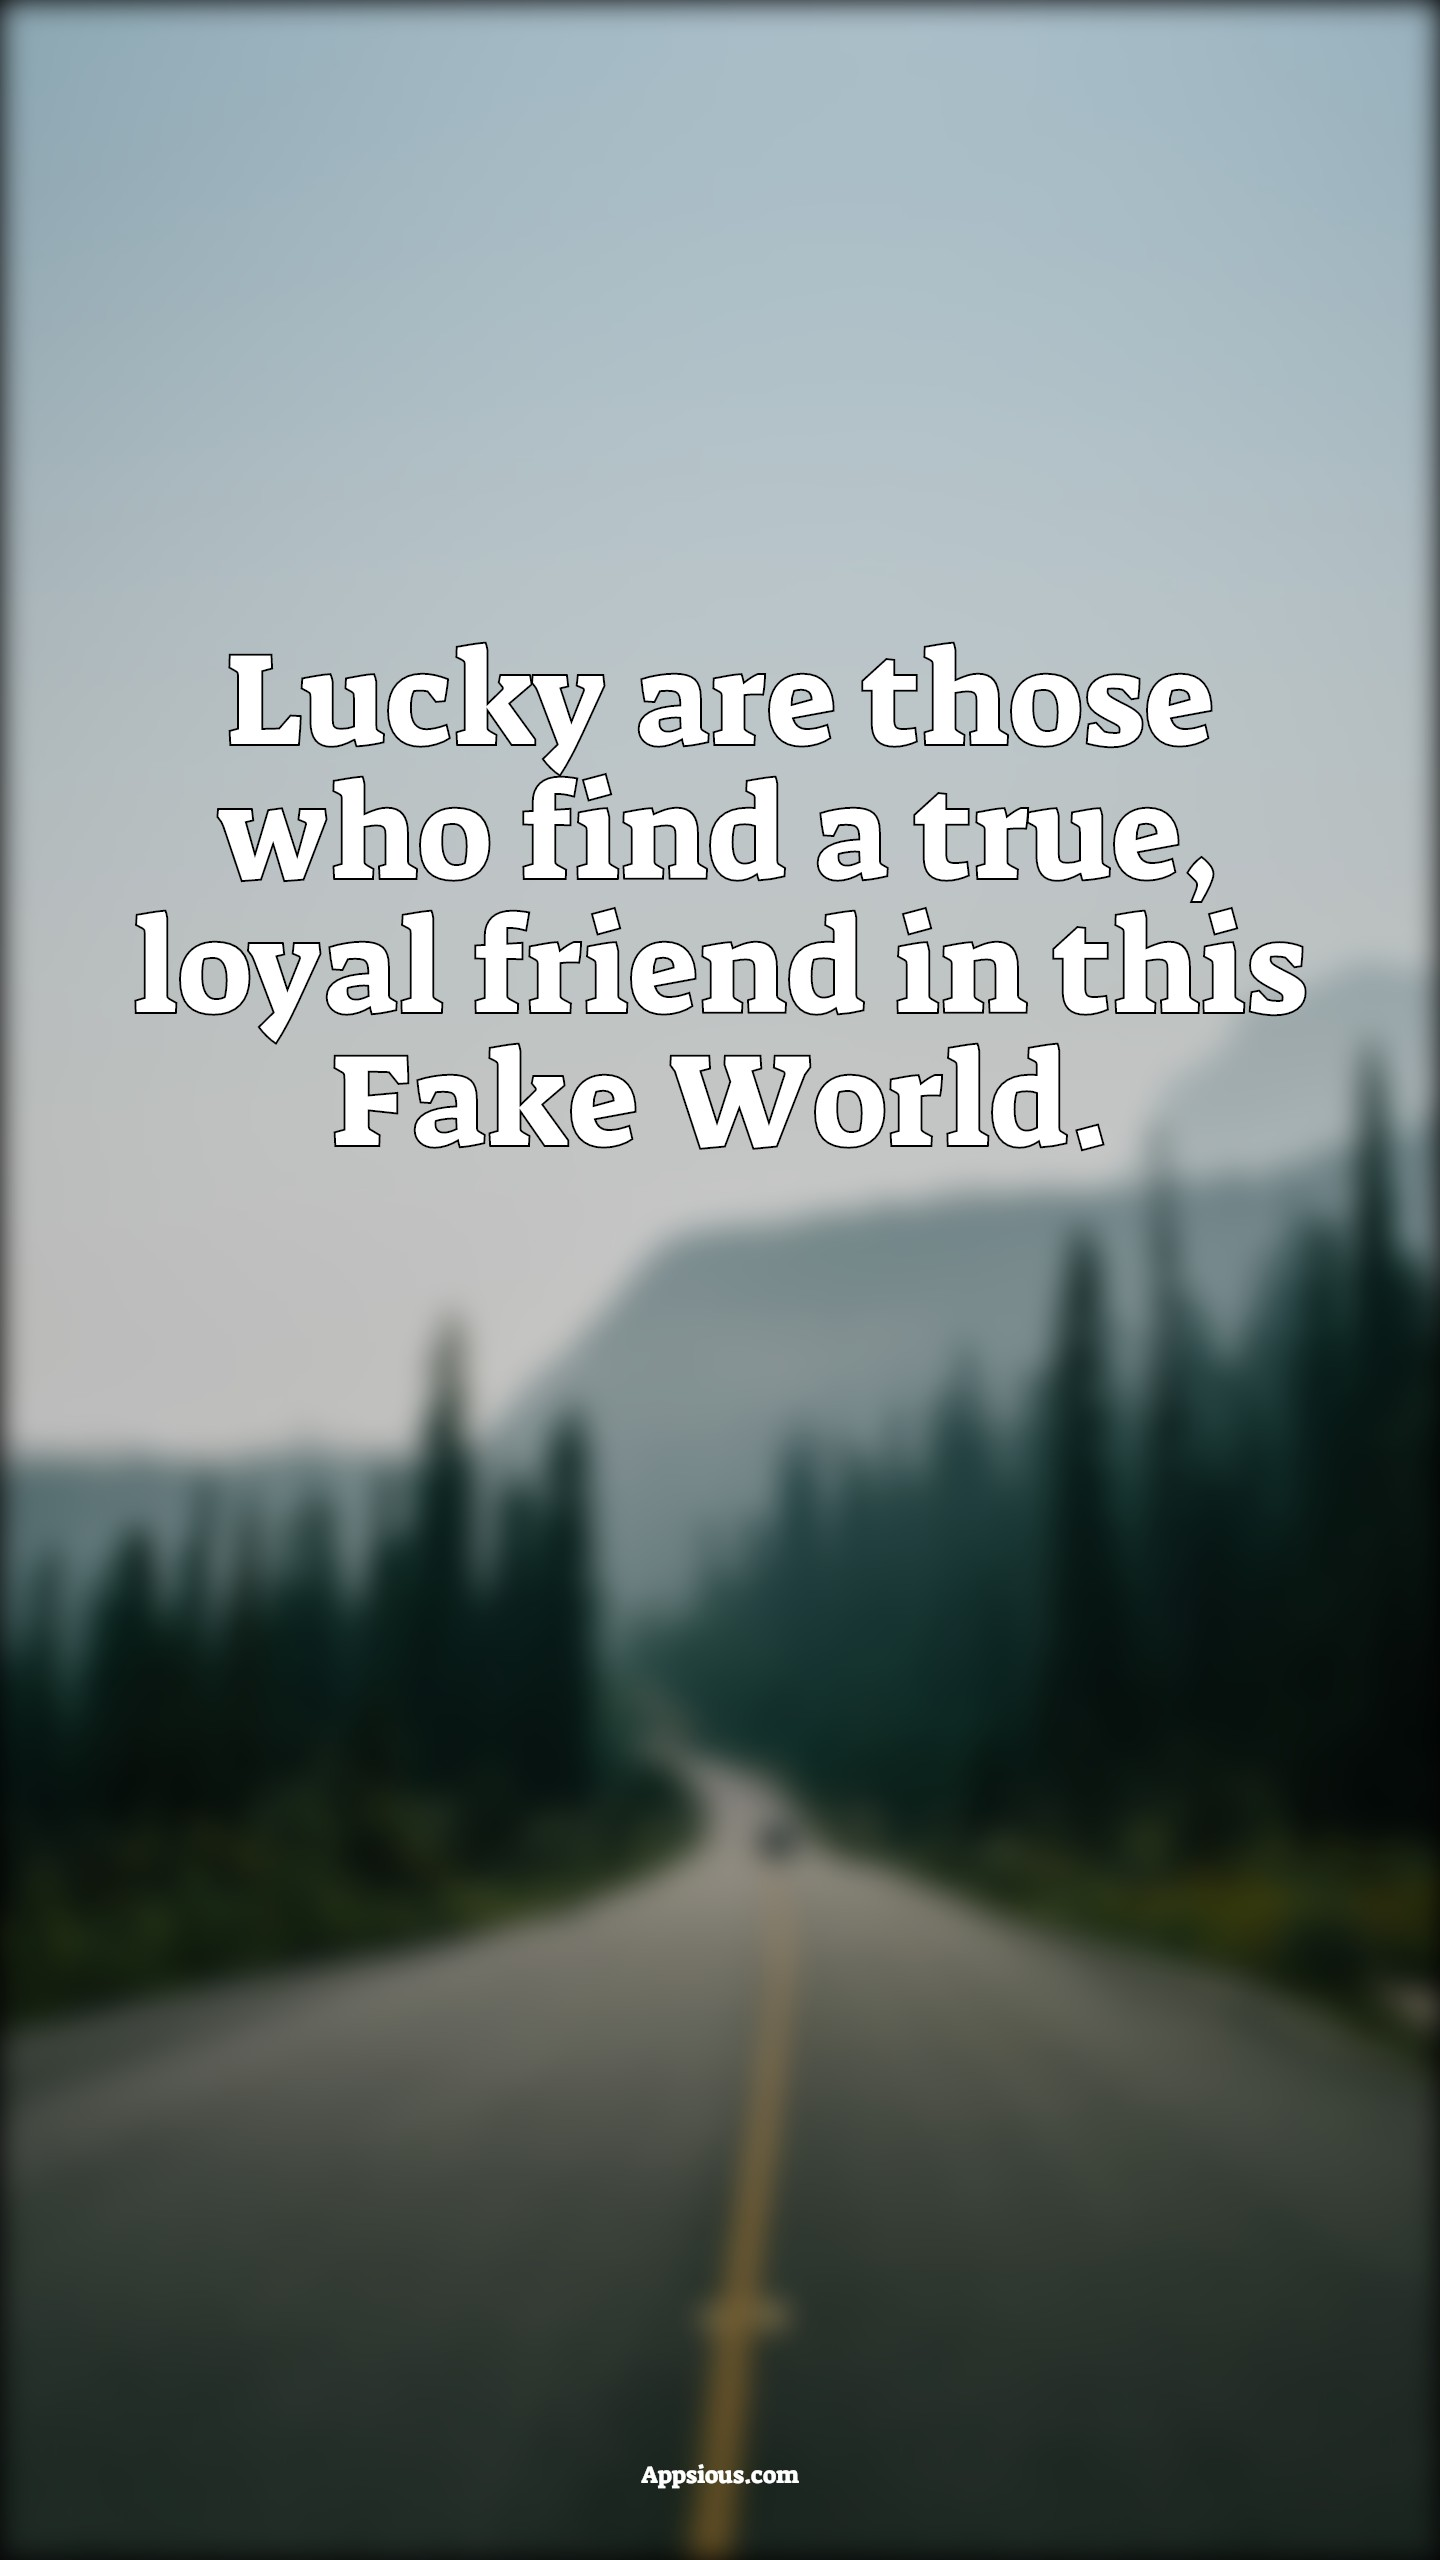 Lucky are those who find a true, loyal friend in this Fake World.